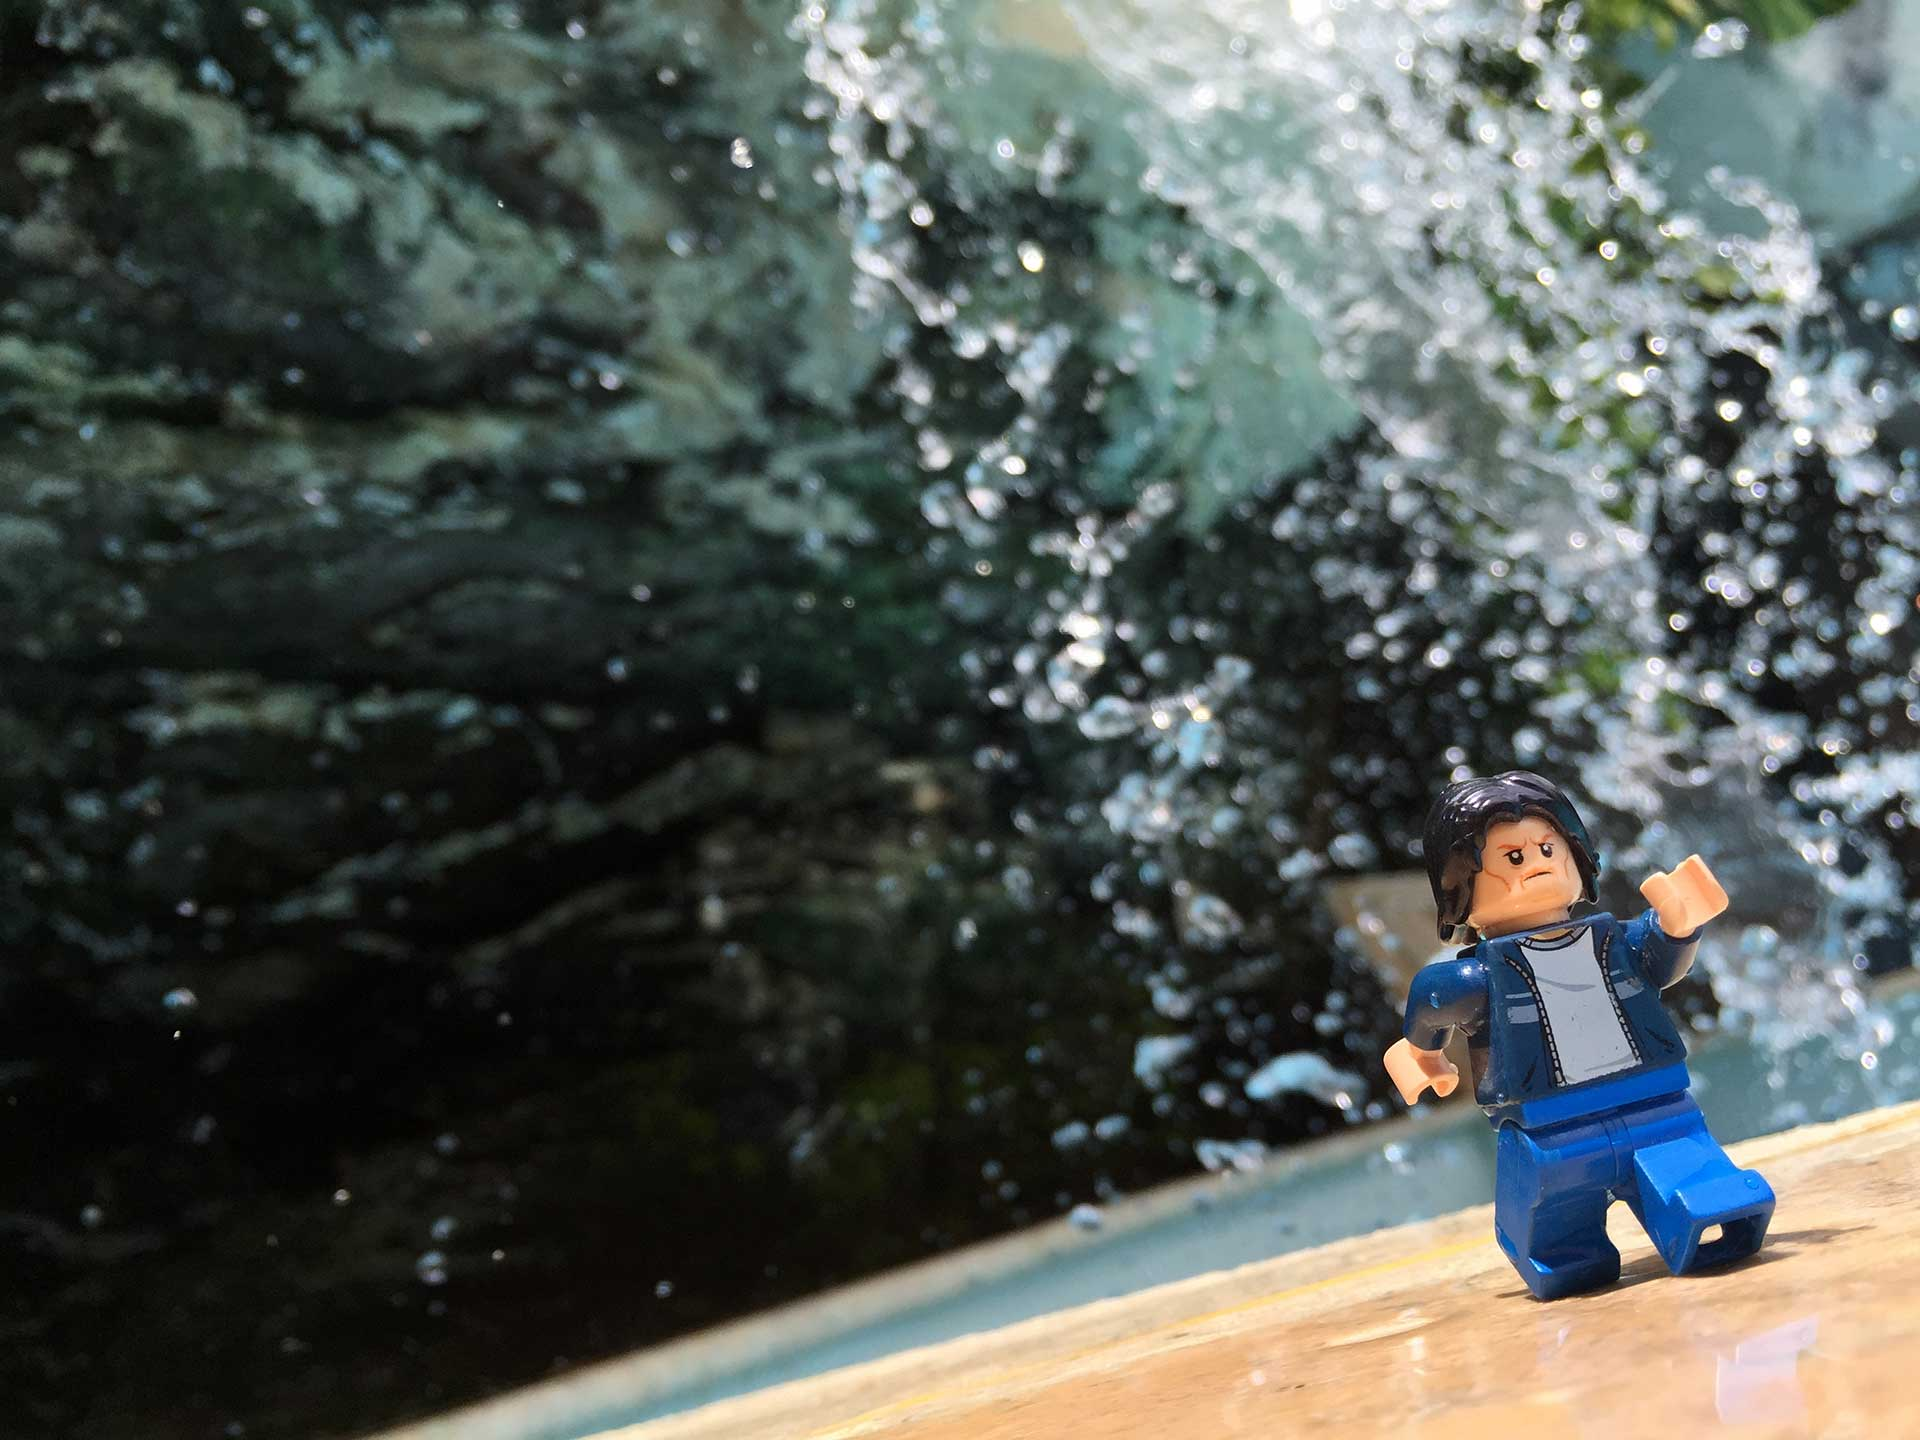 Lego Uncle Jim at the Waterfall